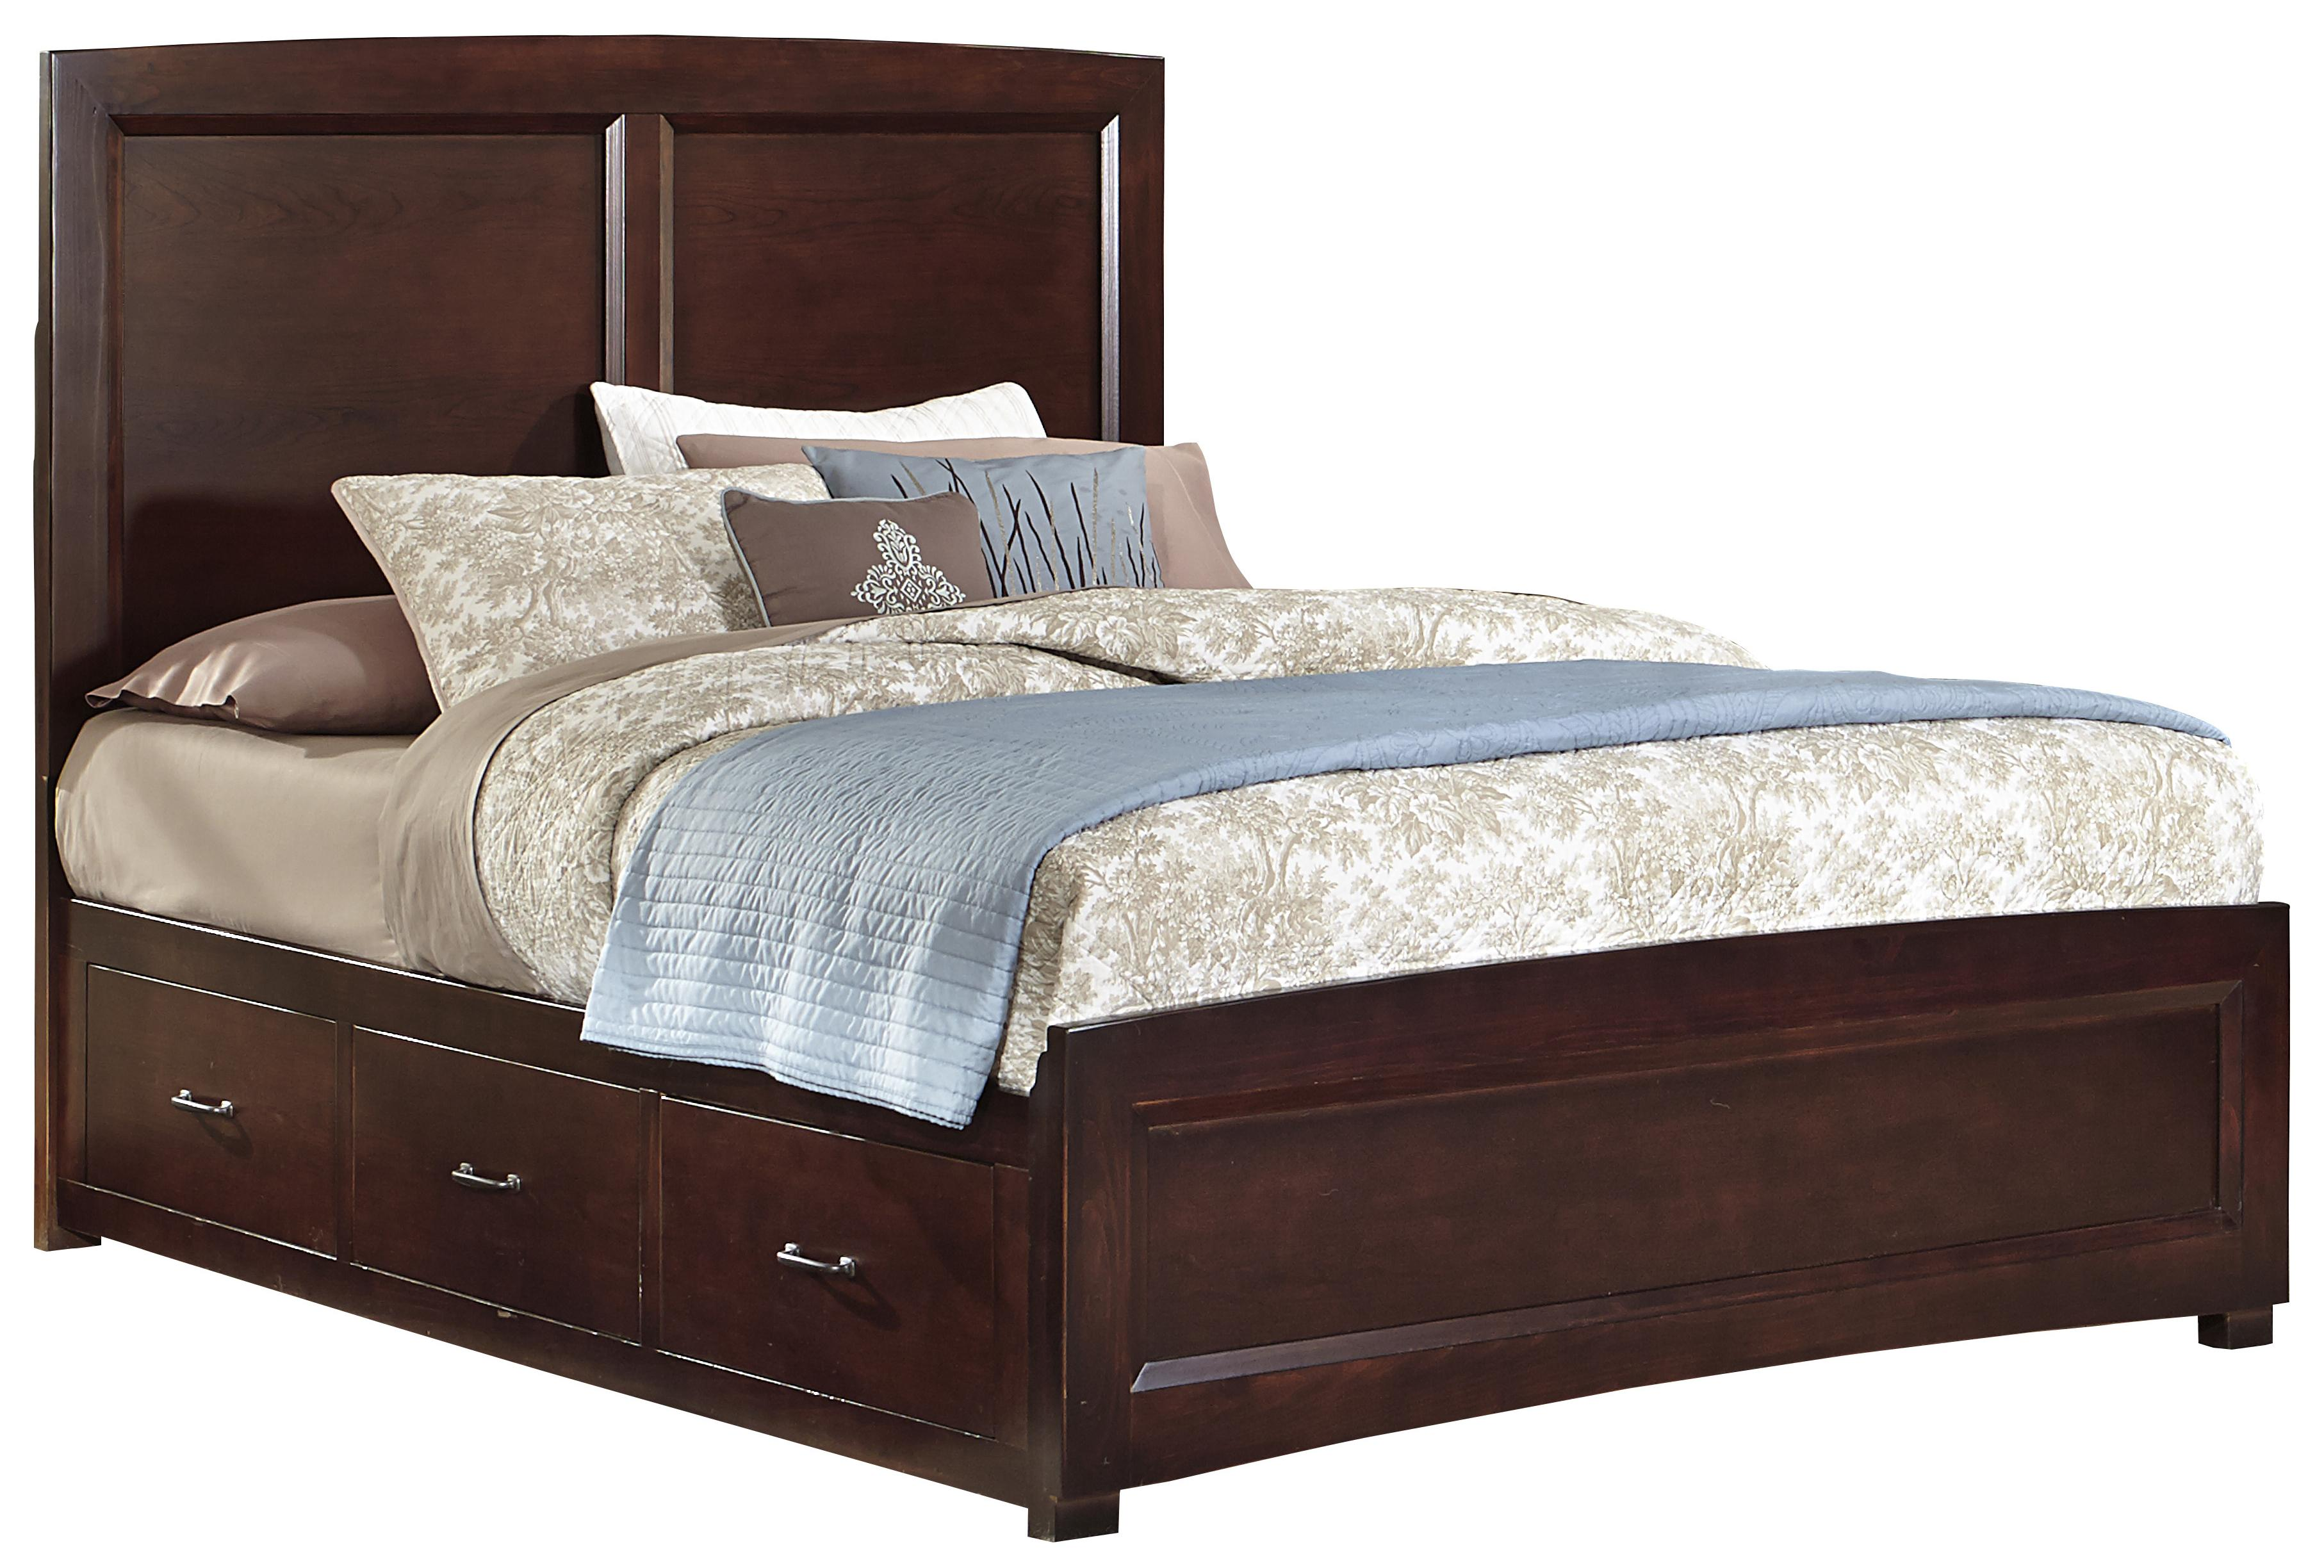 Vaughan Bassett Transitions King Panel Bed with 2 Side Storage Units - Item Number: BB68-668+866+2x082B+666T